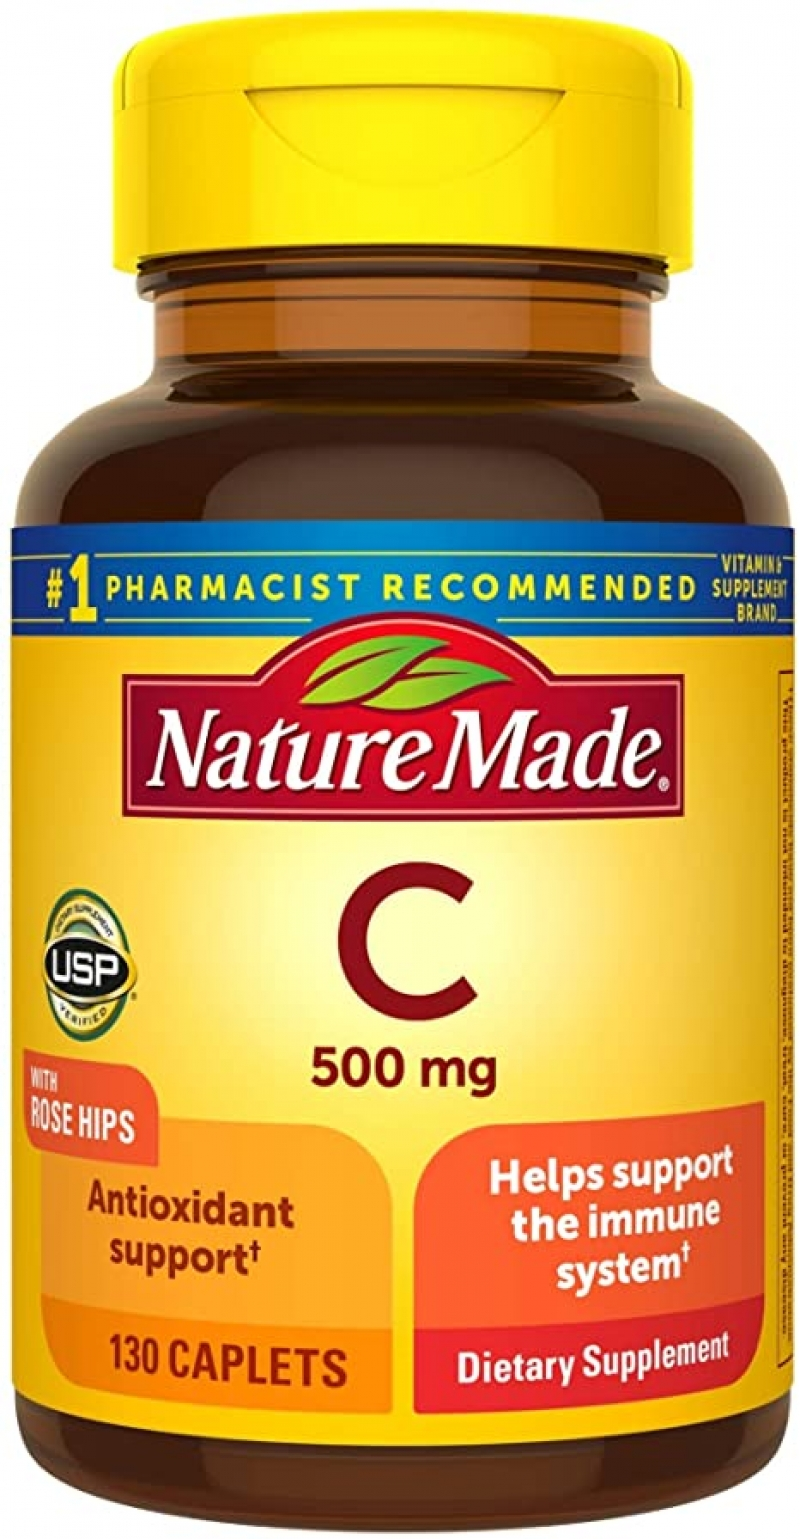 ihocon: Nature Made Vitamin C 500 mg Caplets with Rose Hips, 130 Count to Help Support the Immune System